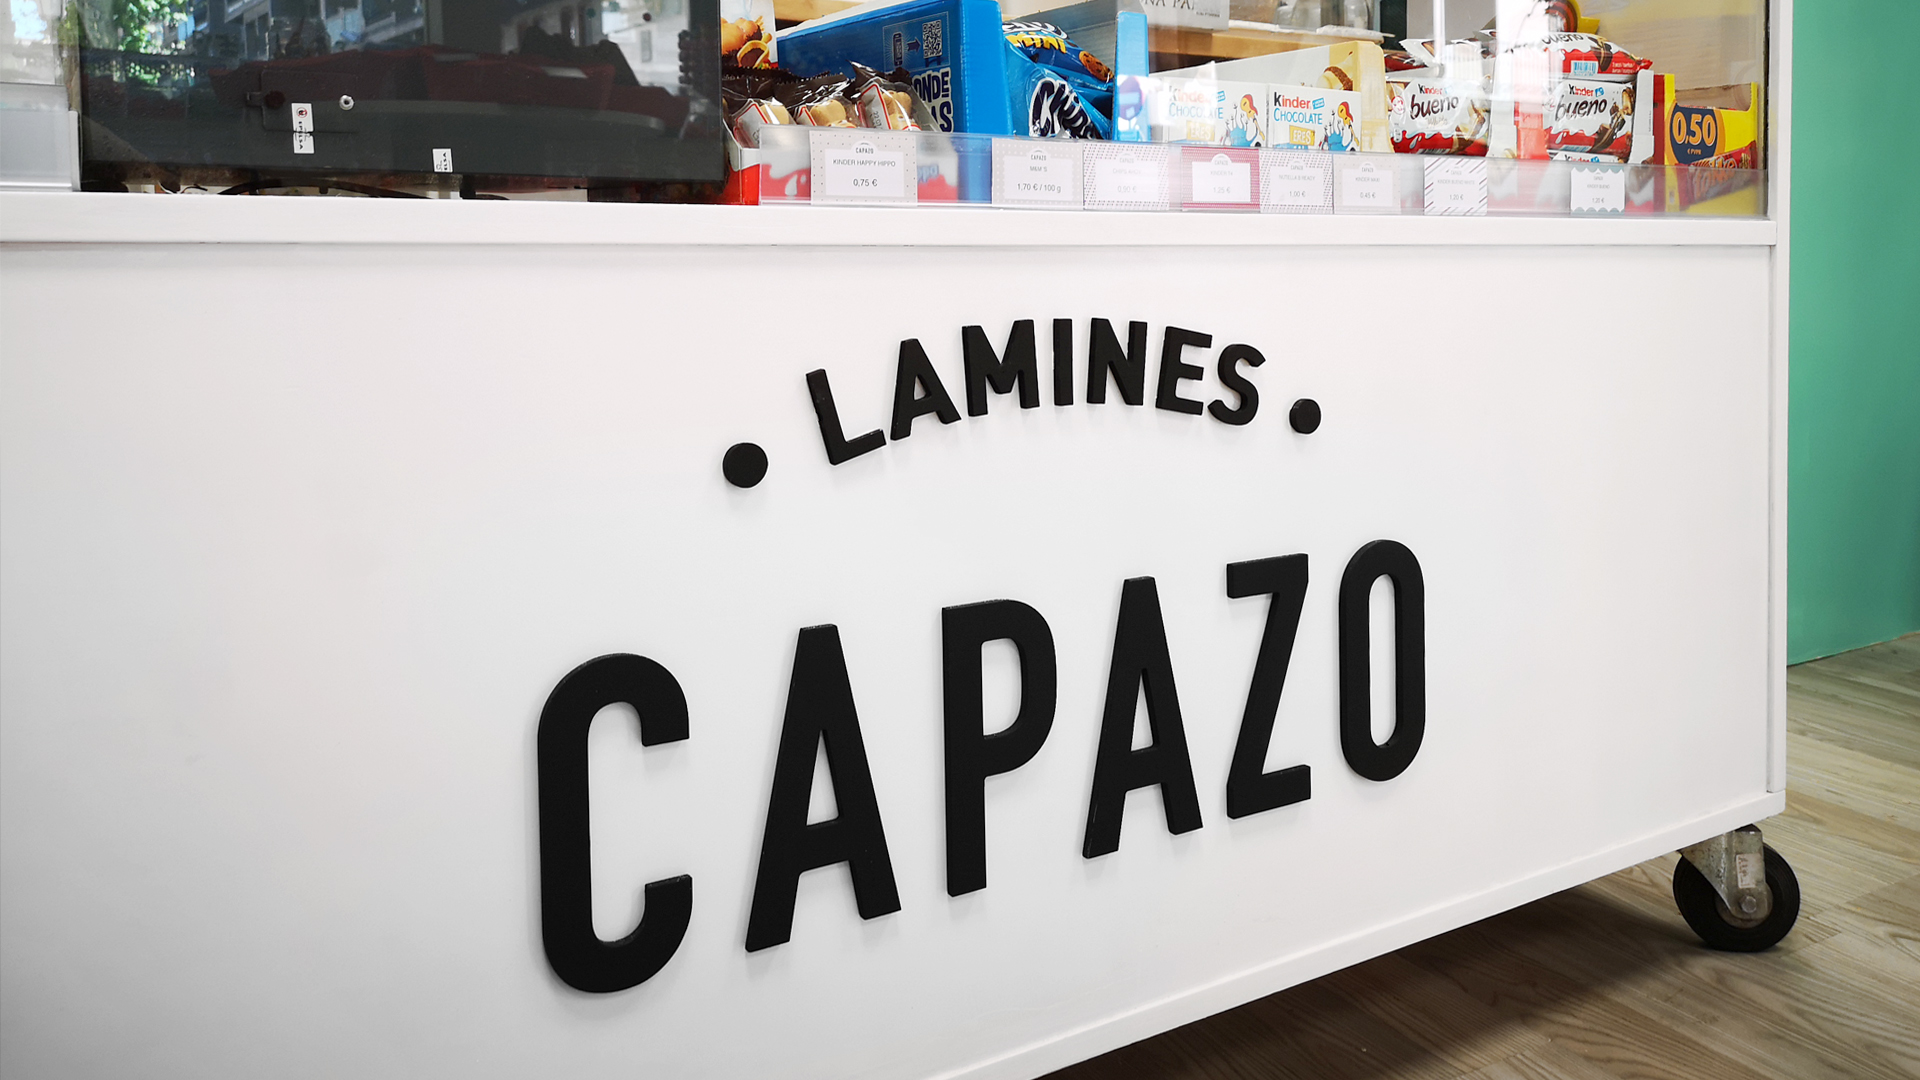 Branding and Retail Design Created for Lamines Capazo by igloo